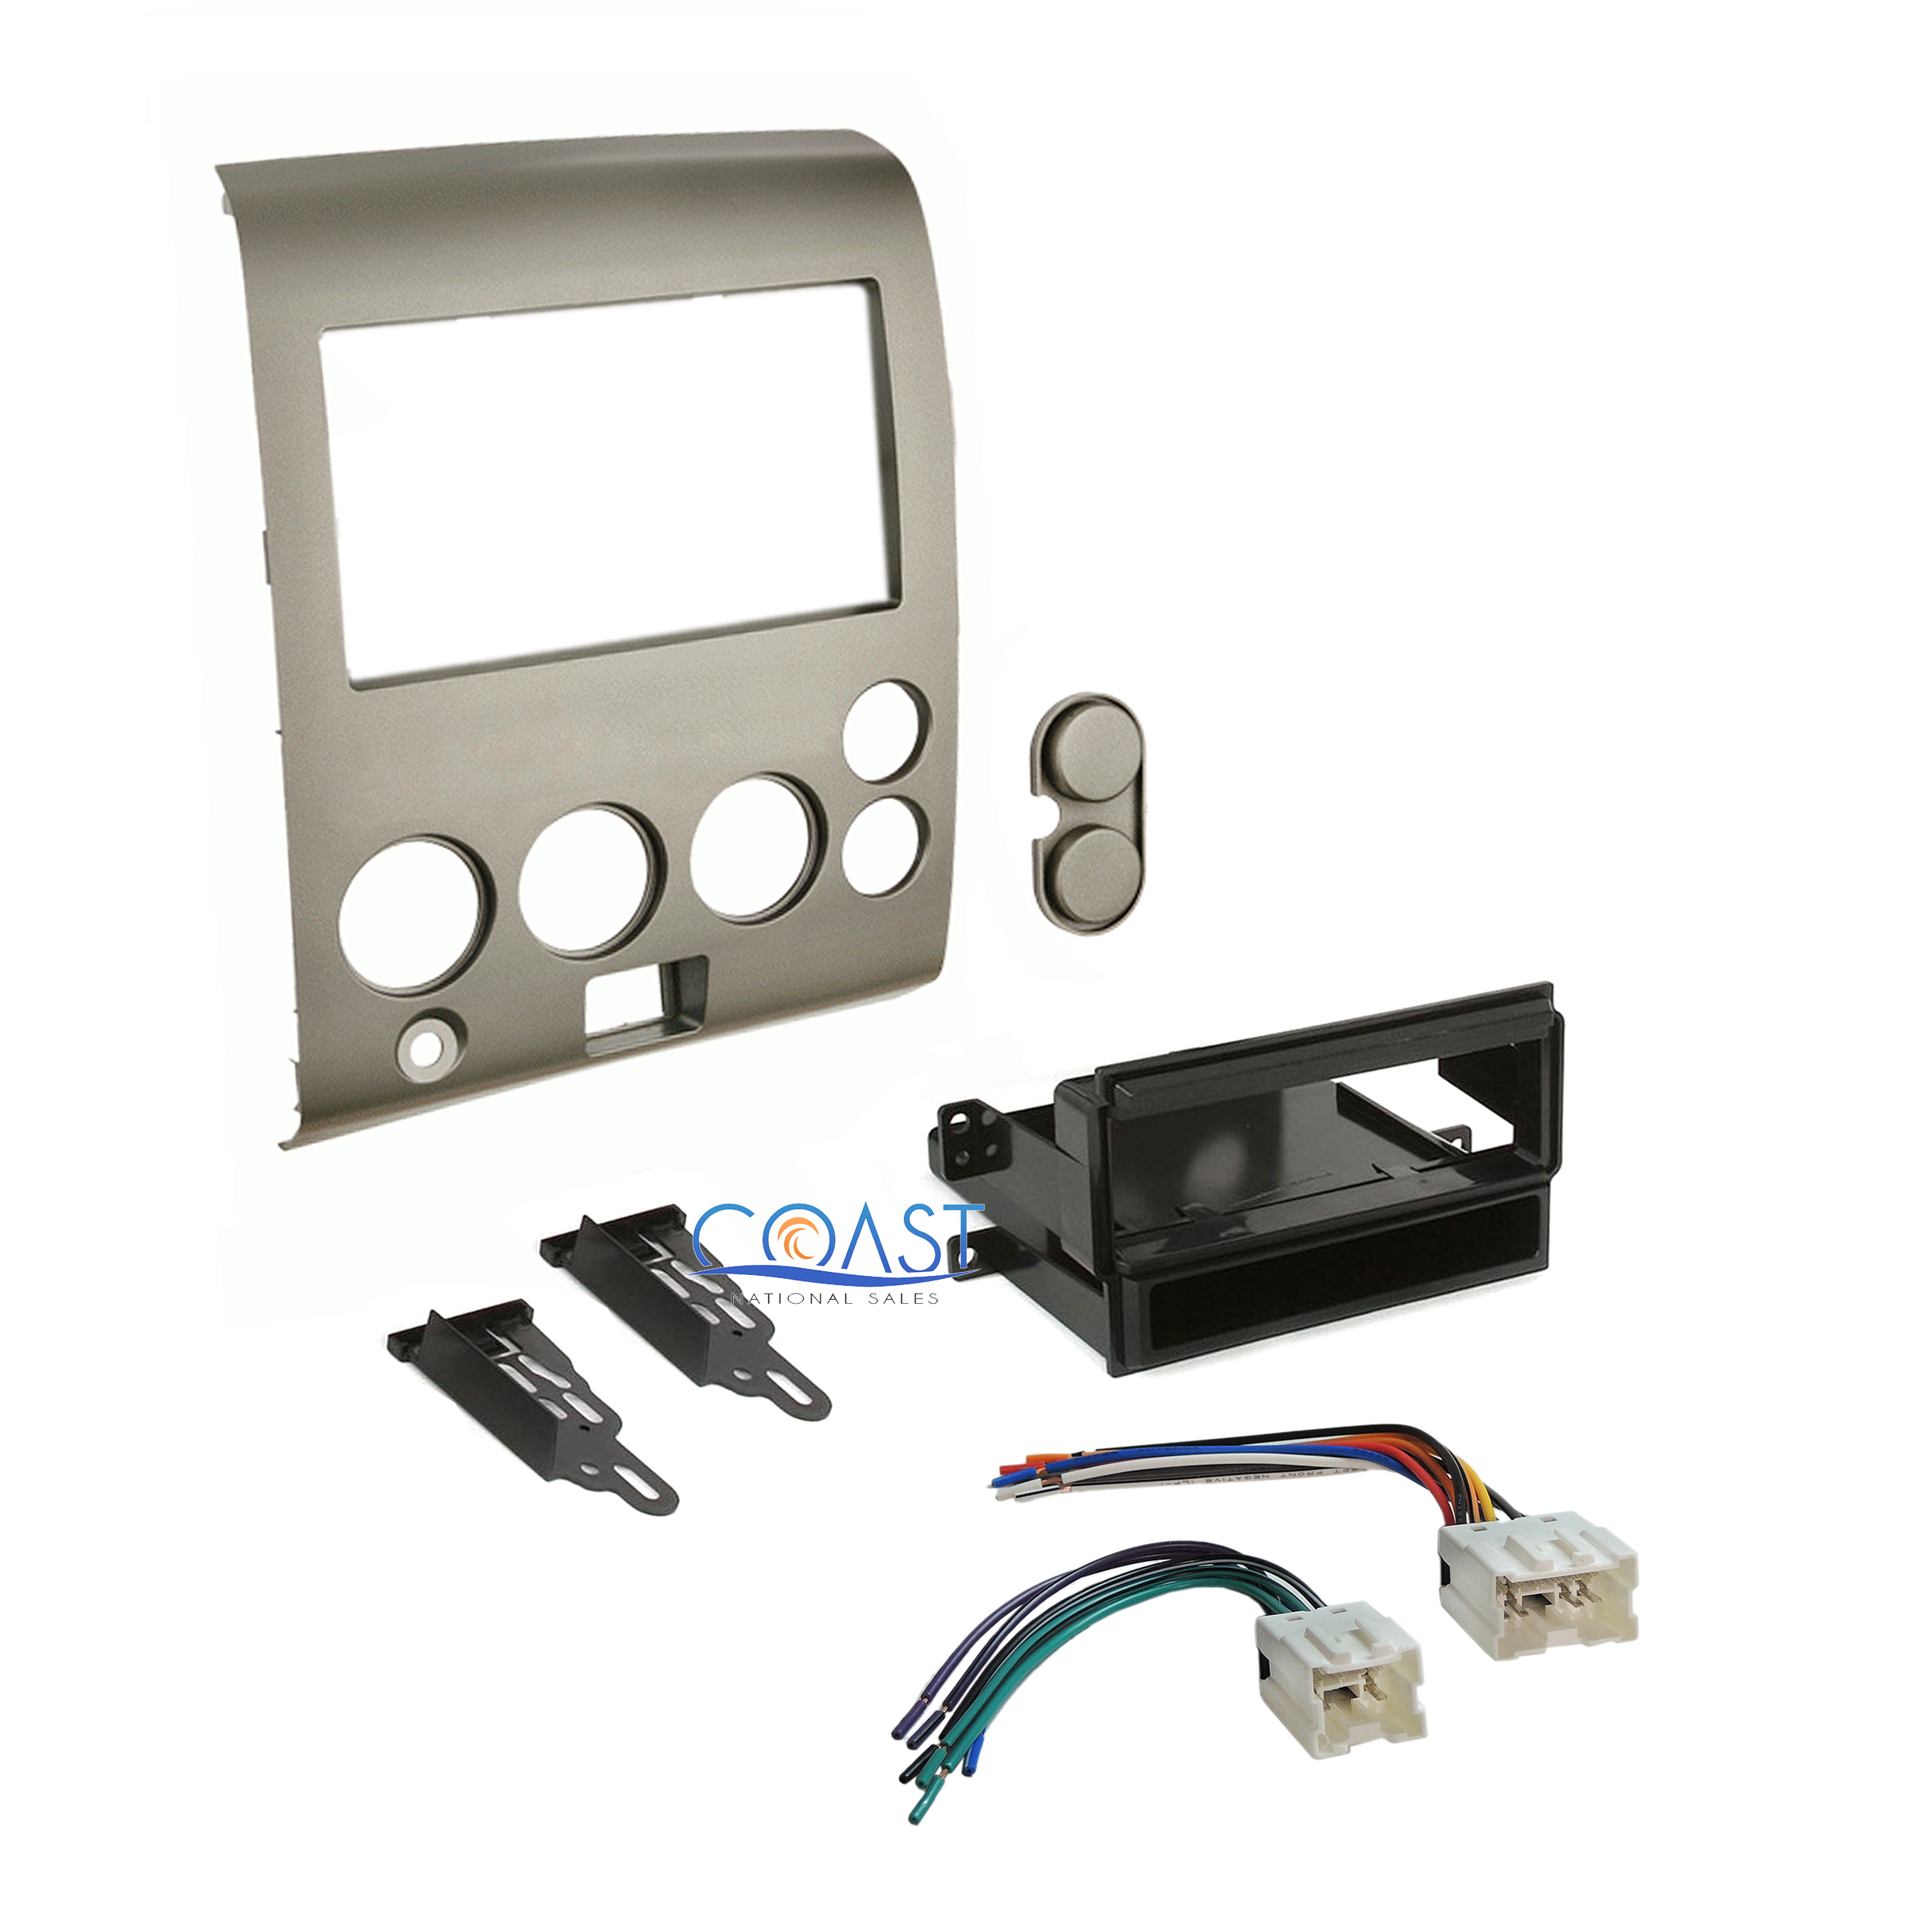 Metra car stereo dash kit harness for  nissan